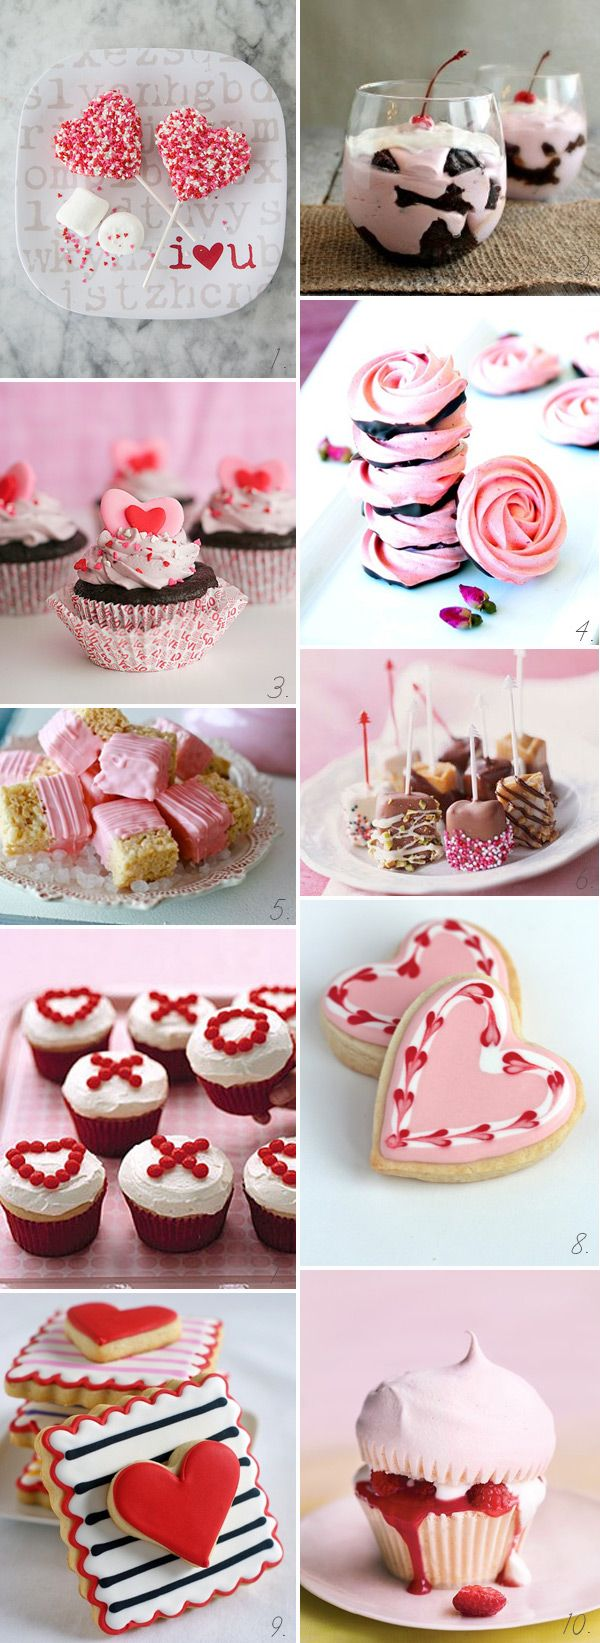 Sweets and Treats - Valentine's Day Goodies | OneFabDay.com